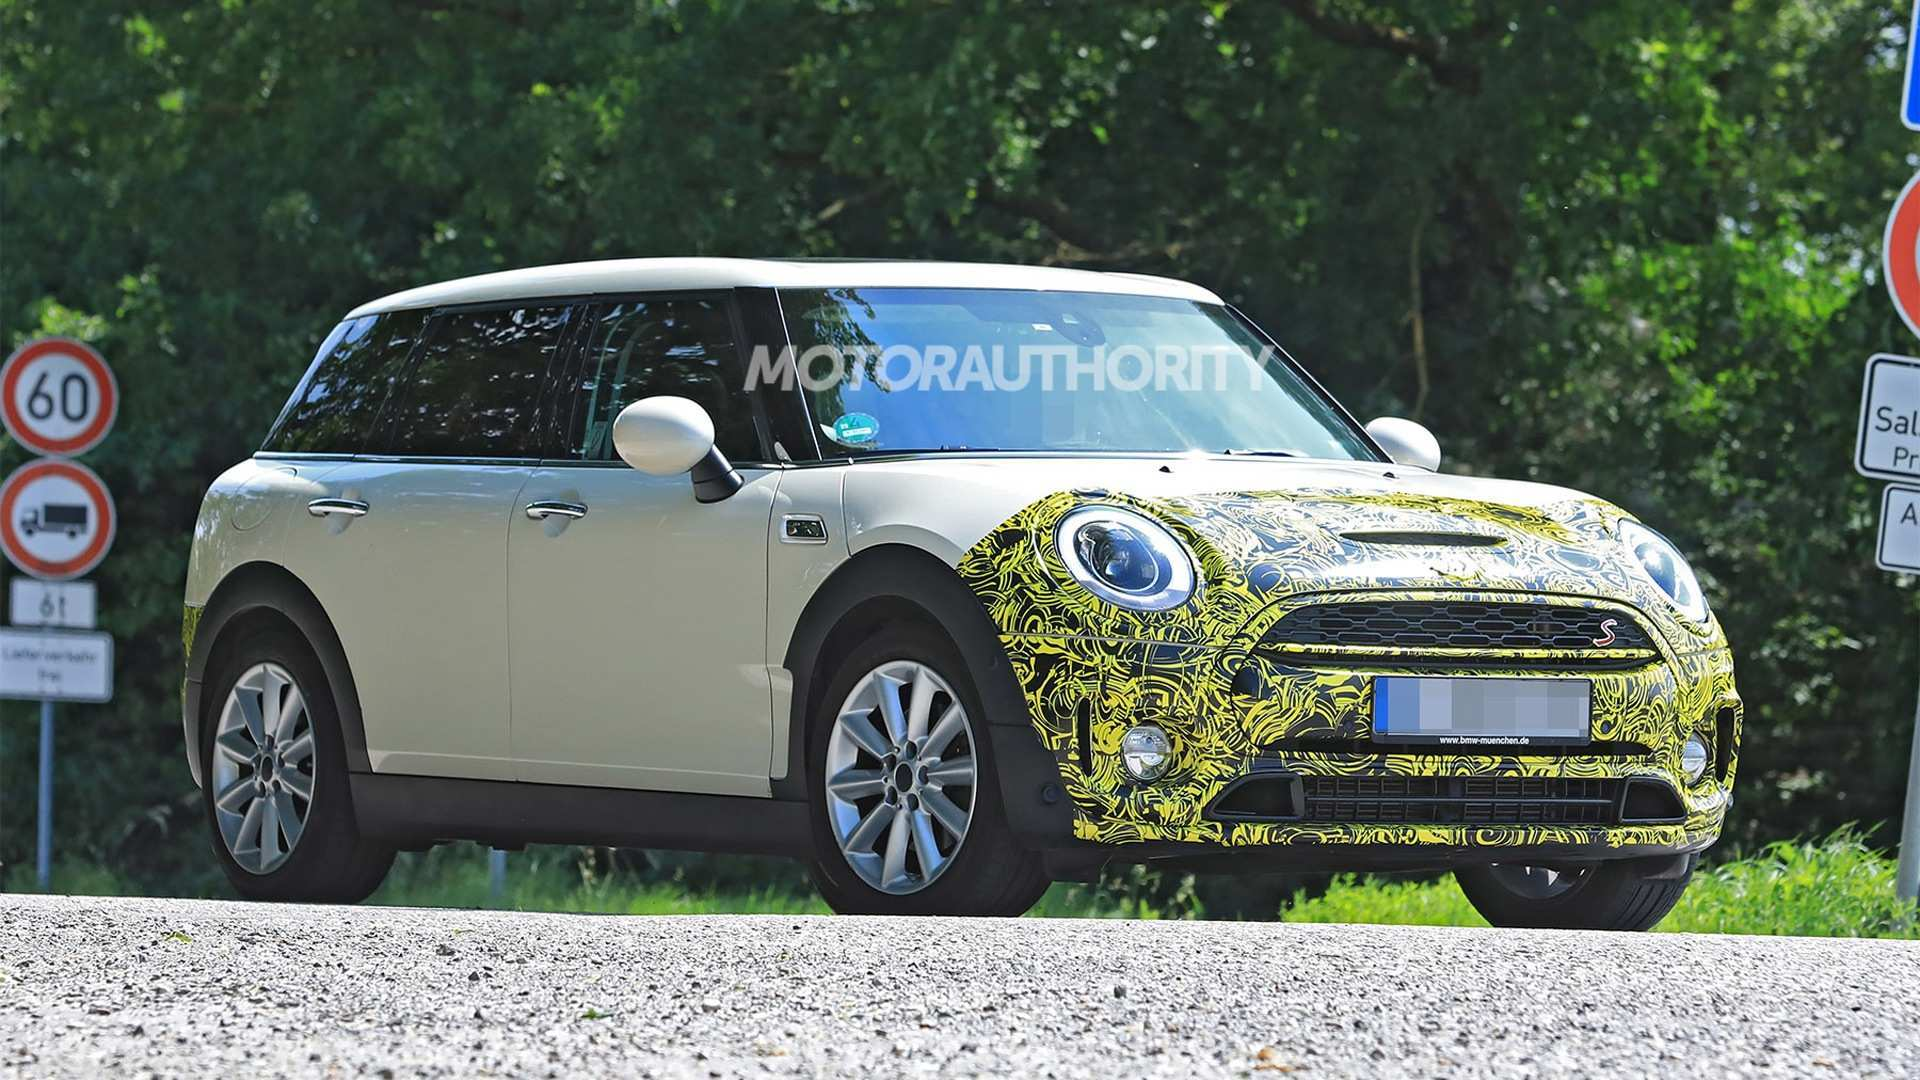 70 Concept of 2020 Mini Cooper Convertible S Exterior and Interior with 2020 Mini Cooper Convertible S